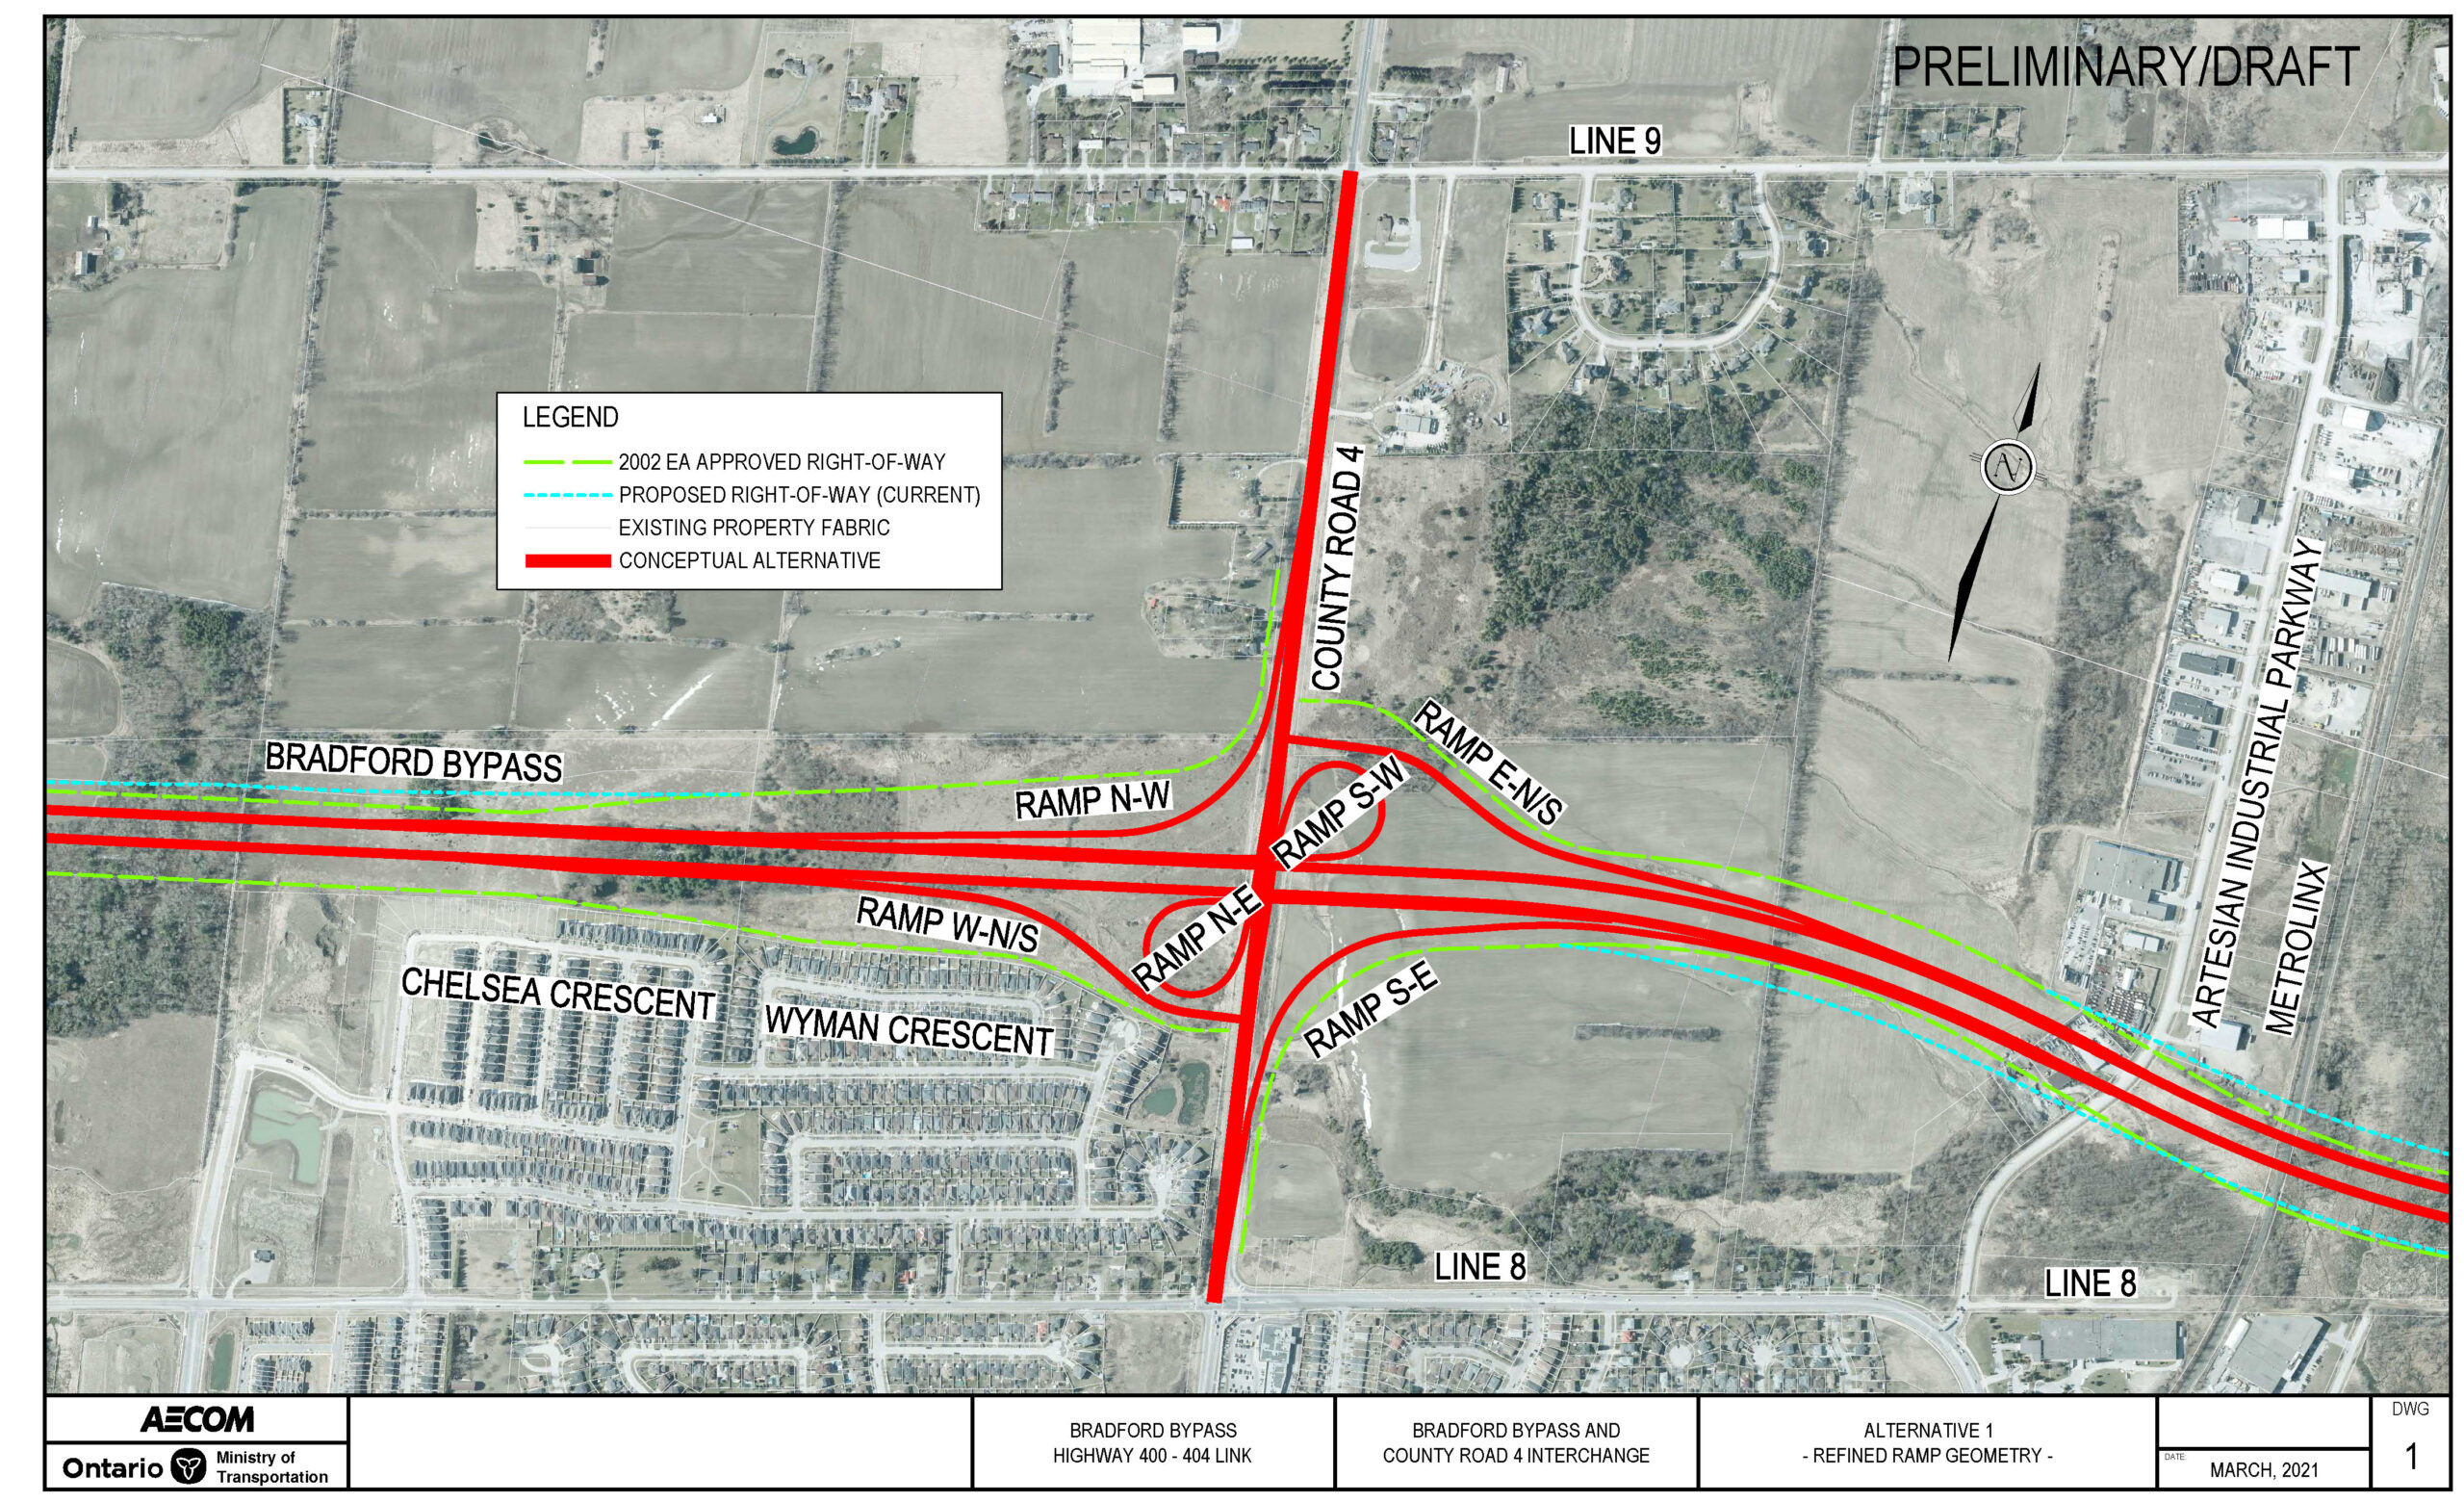 County Road 4 Interchange Base Case (Parclo A4) from 2002 Approved Environmental Assessment